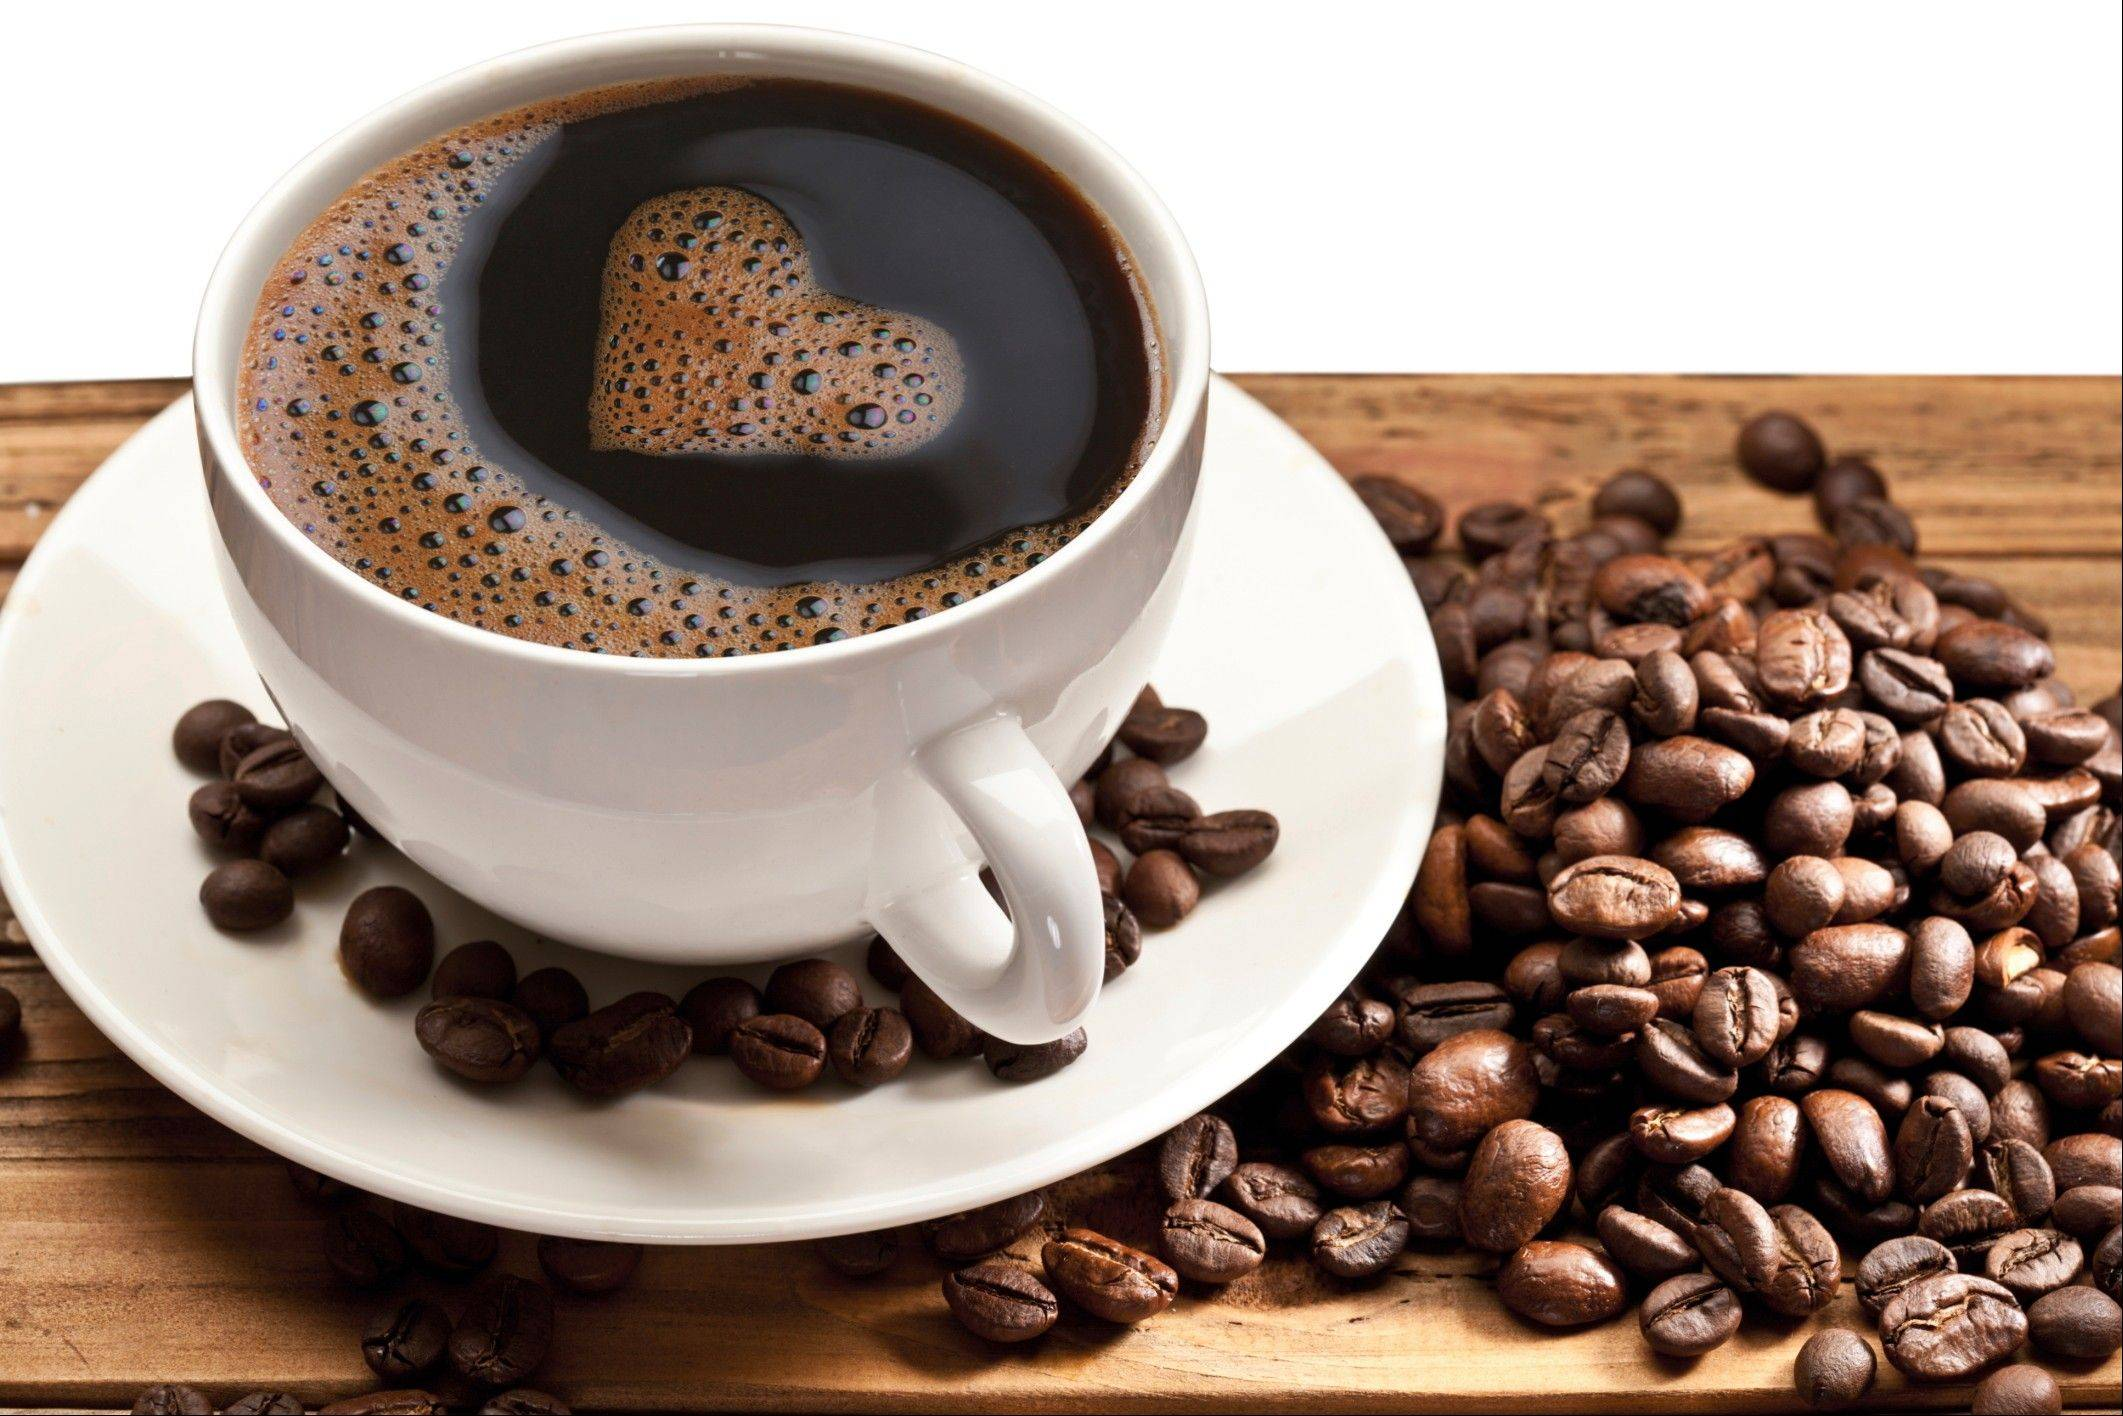 Caffeine in your coffee may reduce your risk of dying from cardiovascular disease, according to a recent study.